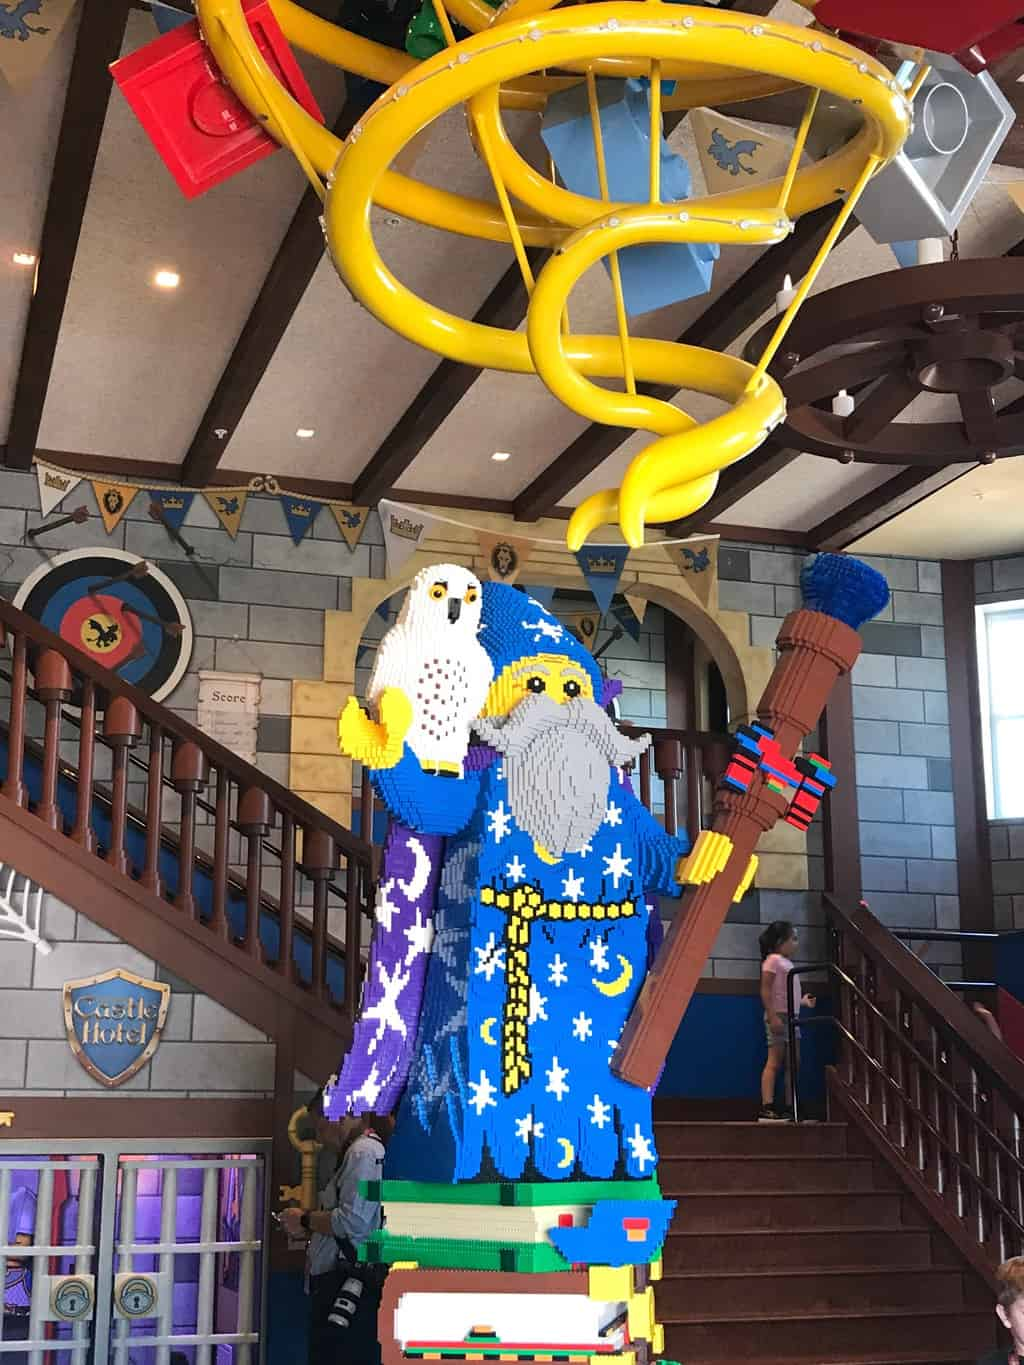 Merlin wizard statue at LEGOLAND Castle Hotel in Carlsbad California